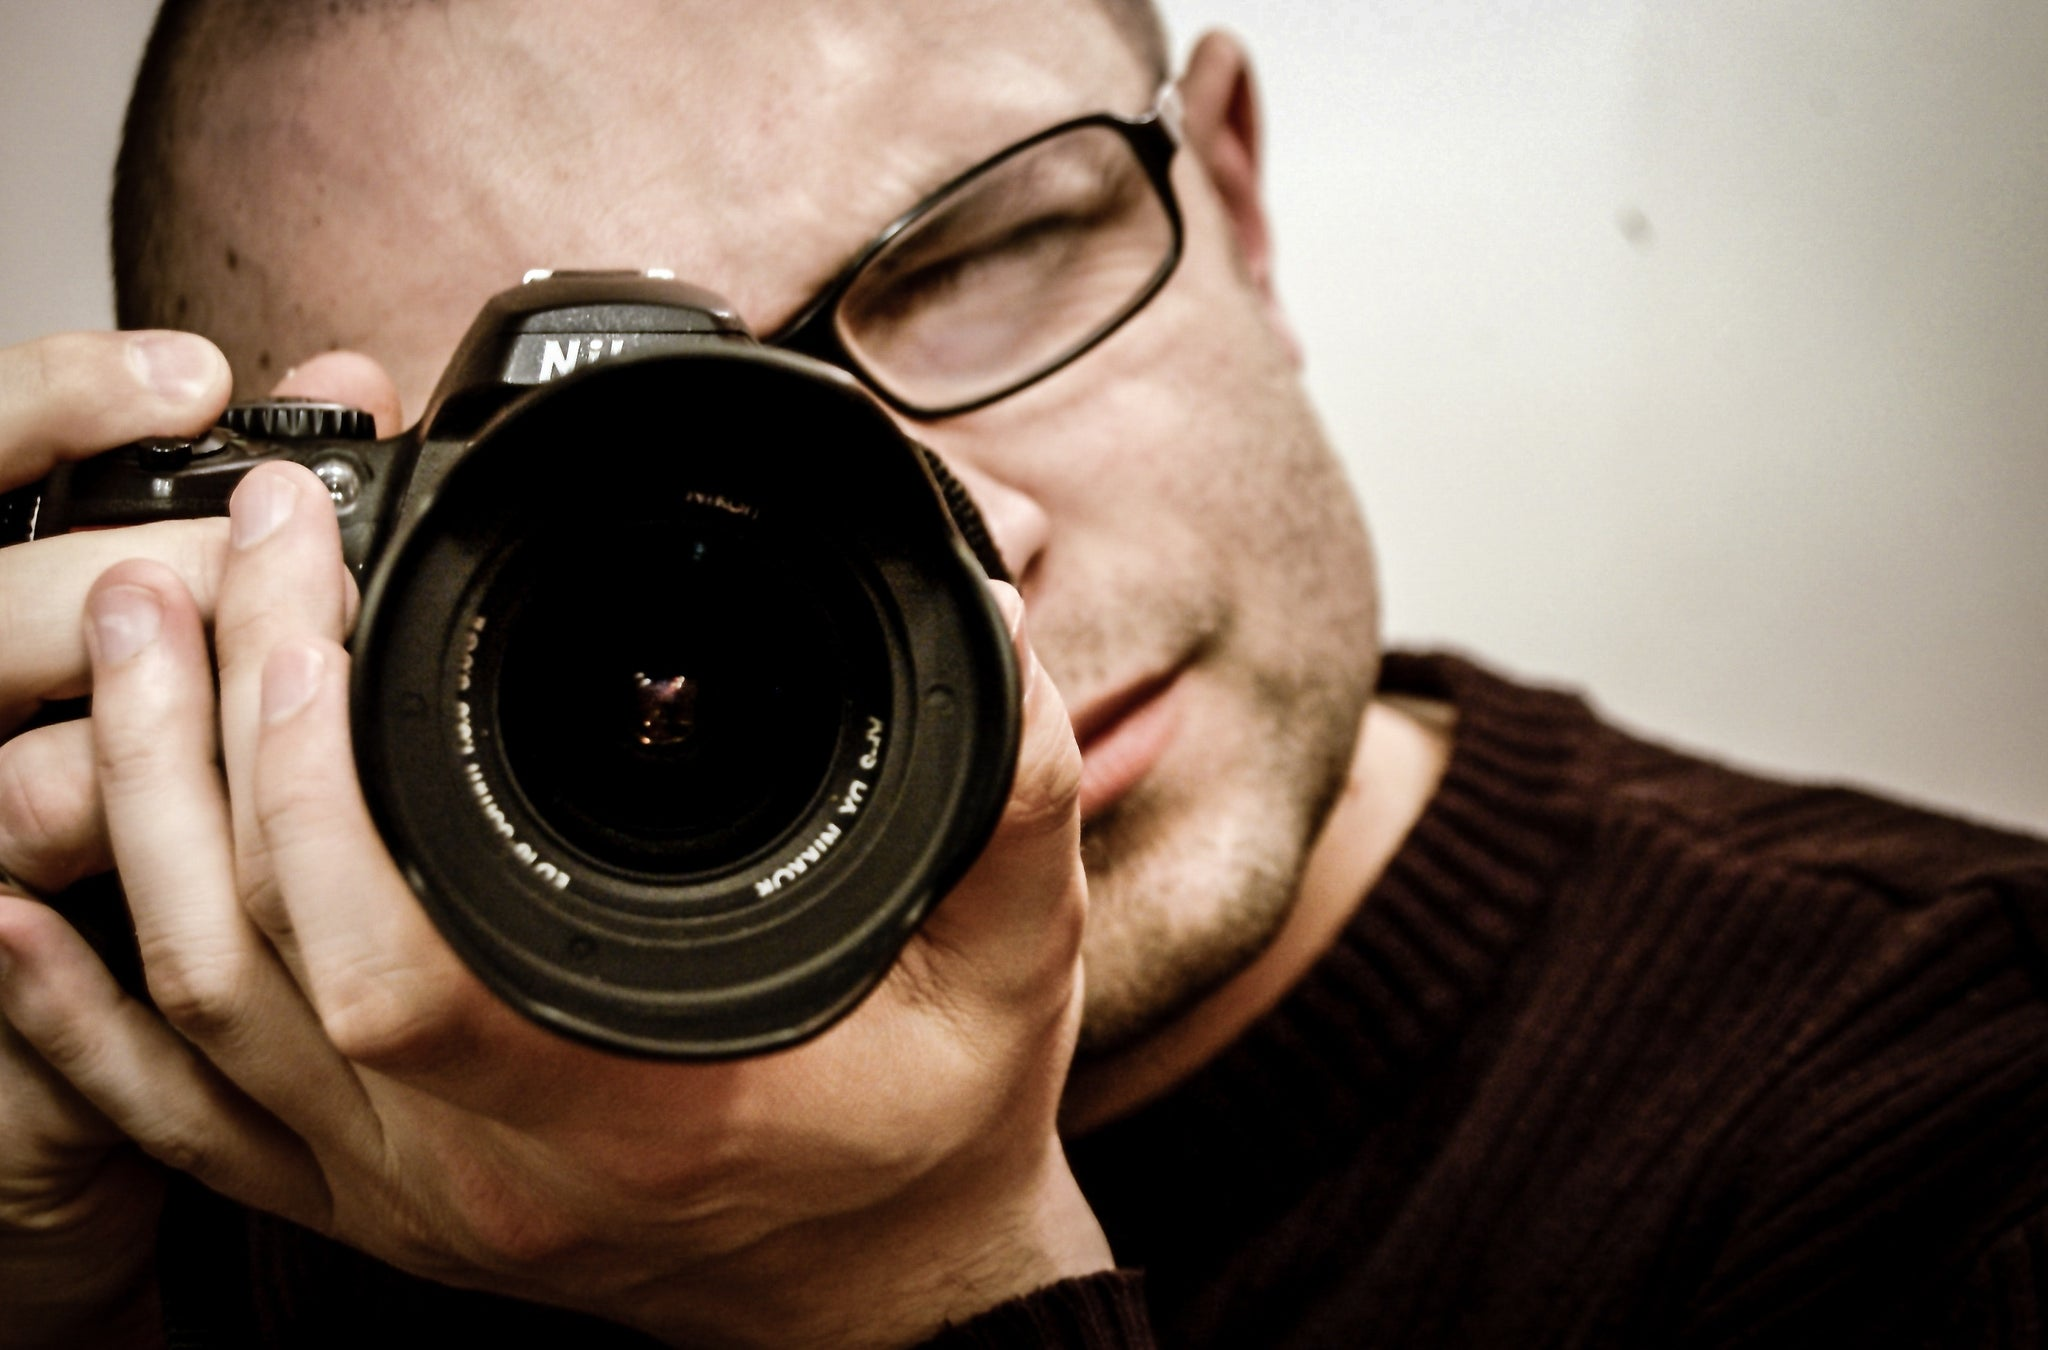 Man wearing glasses pointing a camera, for AutoBrush